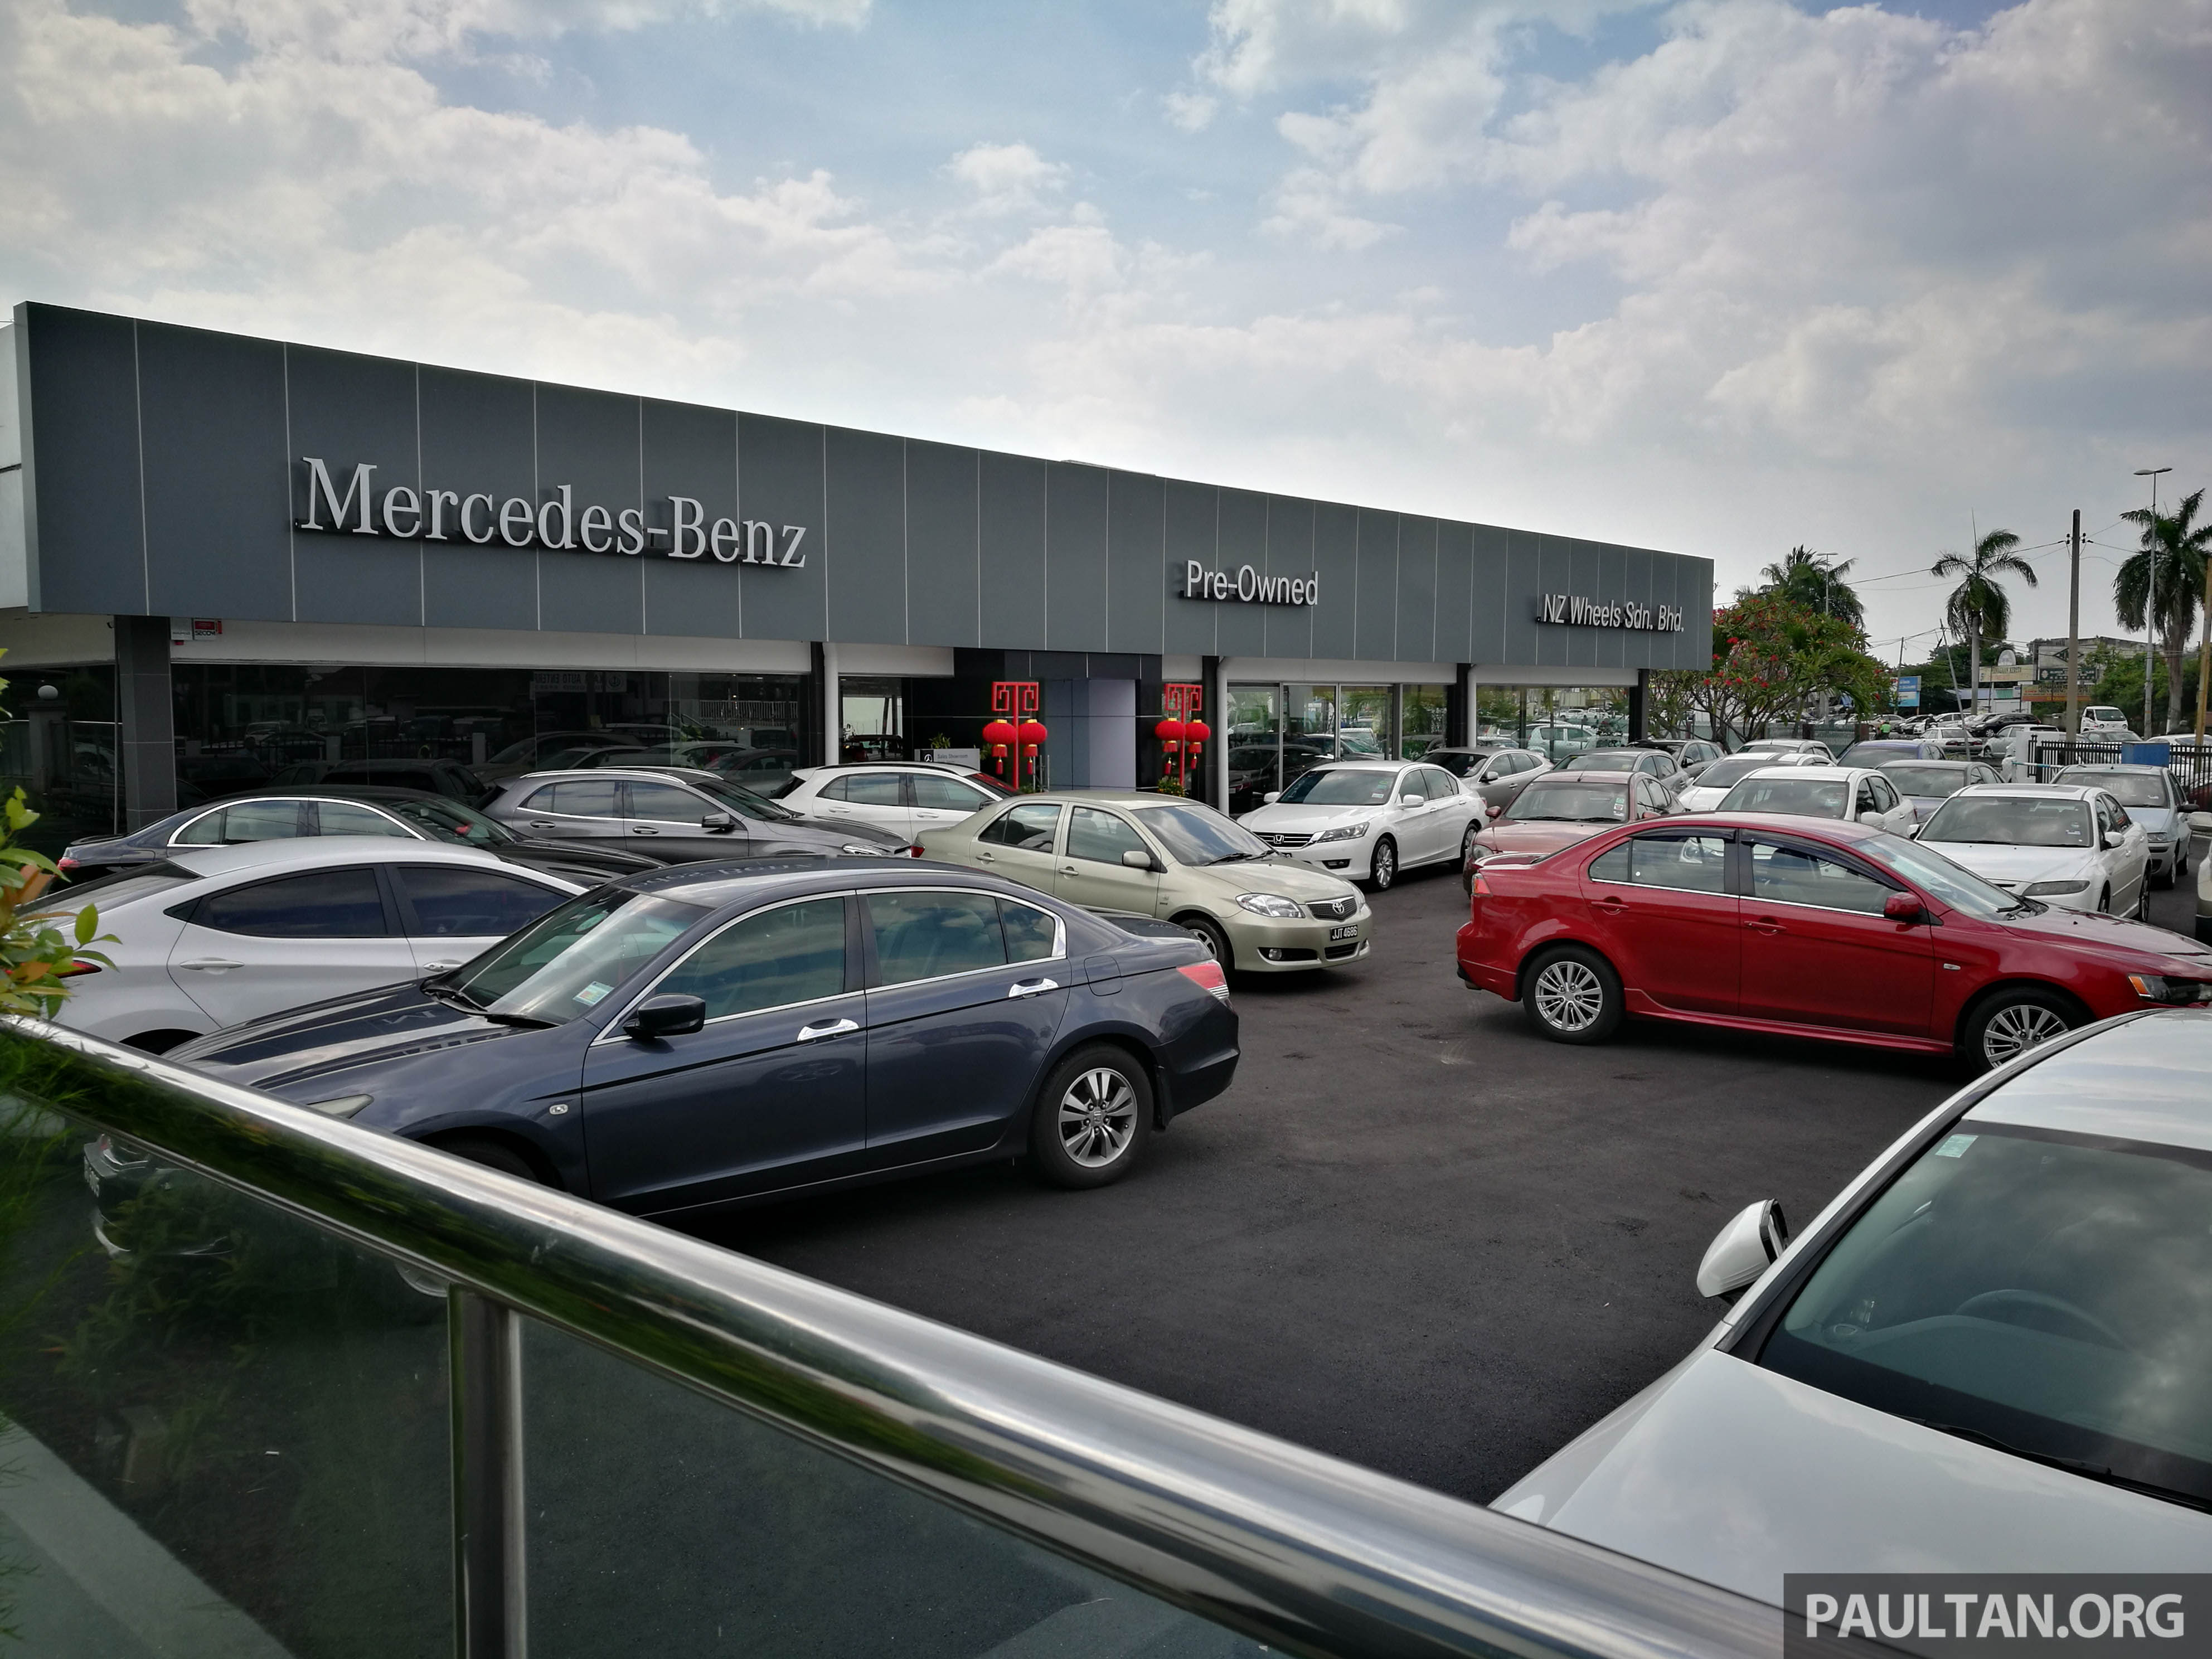 Mercedes-Benz Malaysia launches NZ Wheels Klang Autohaus 3S centre – 320,000 sq ft,